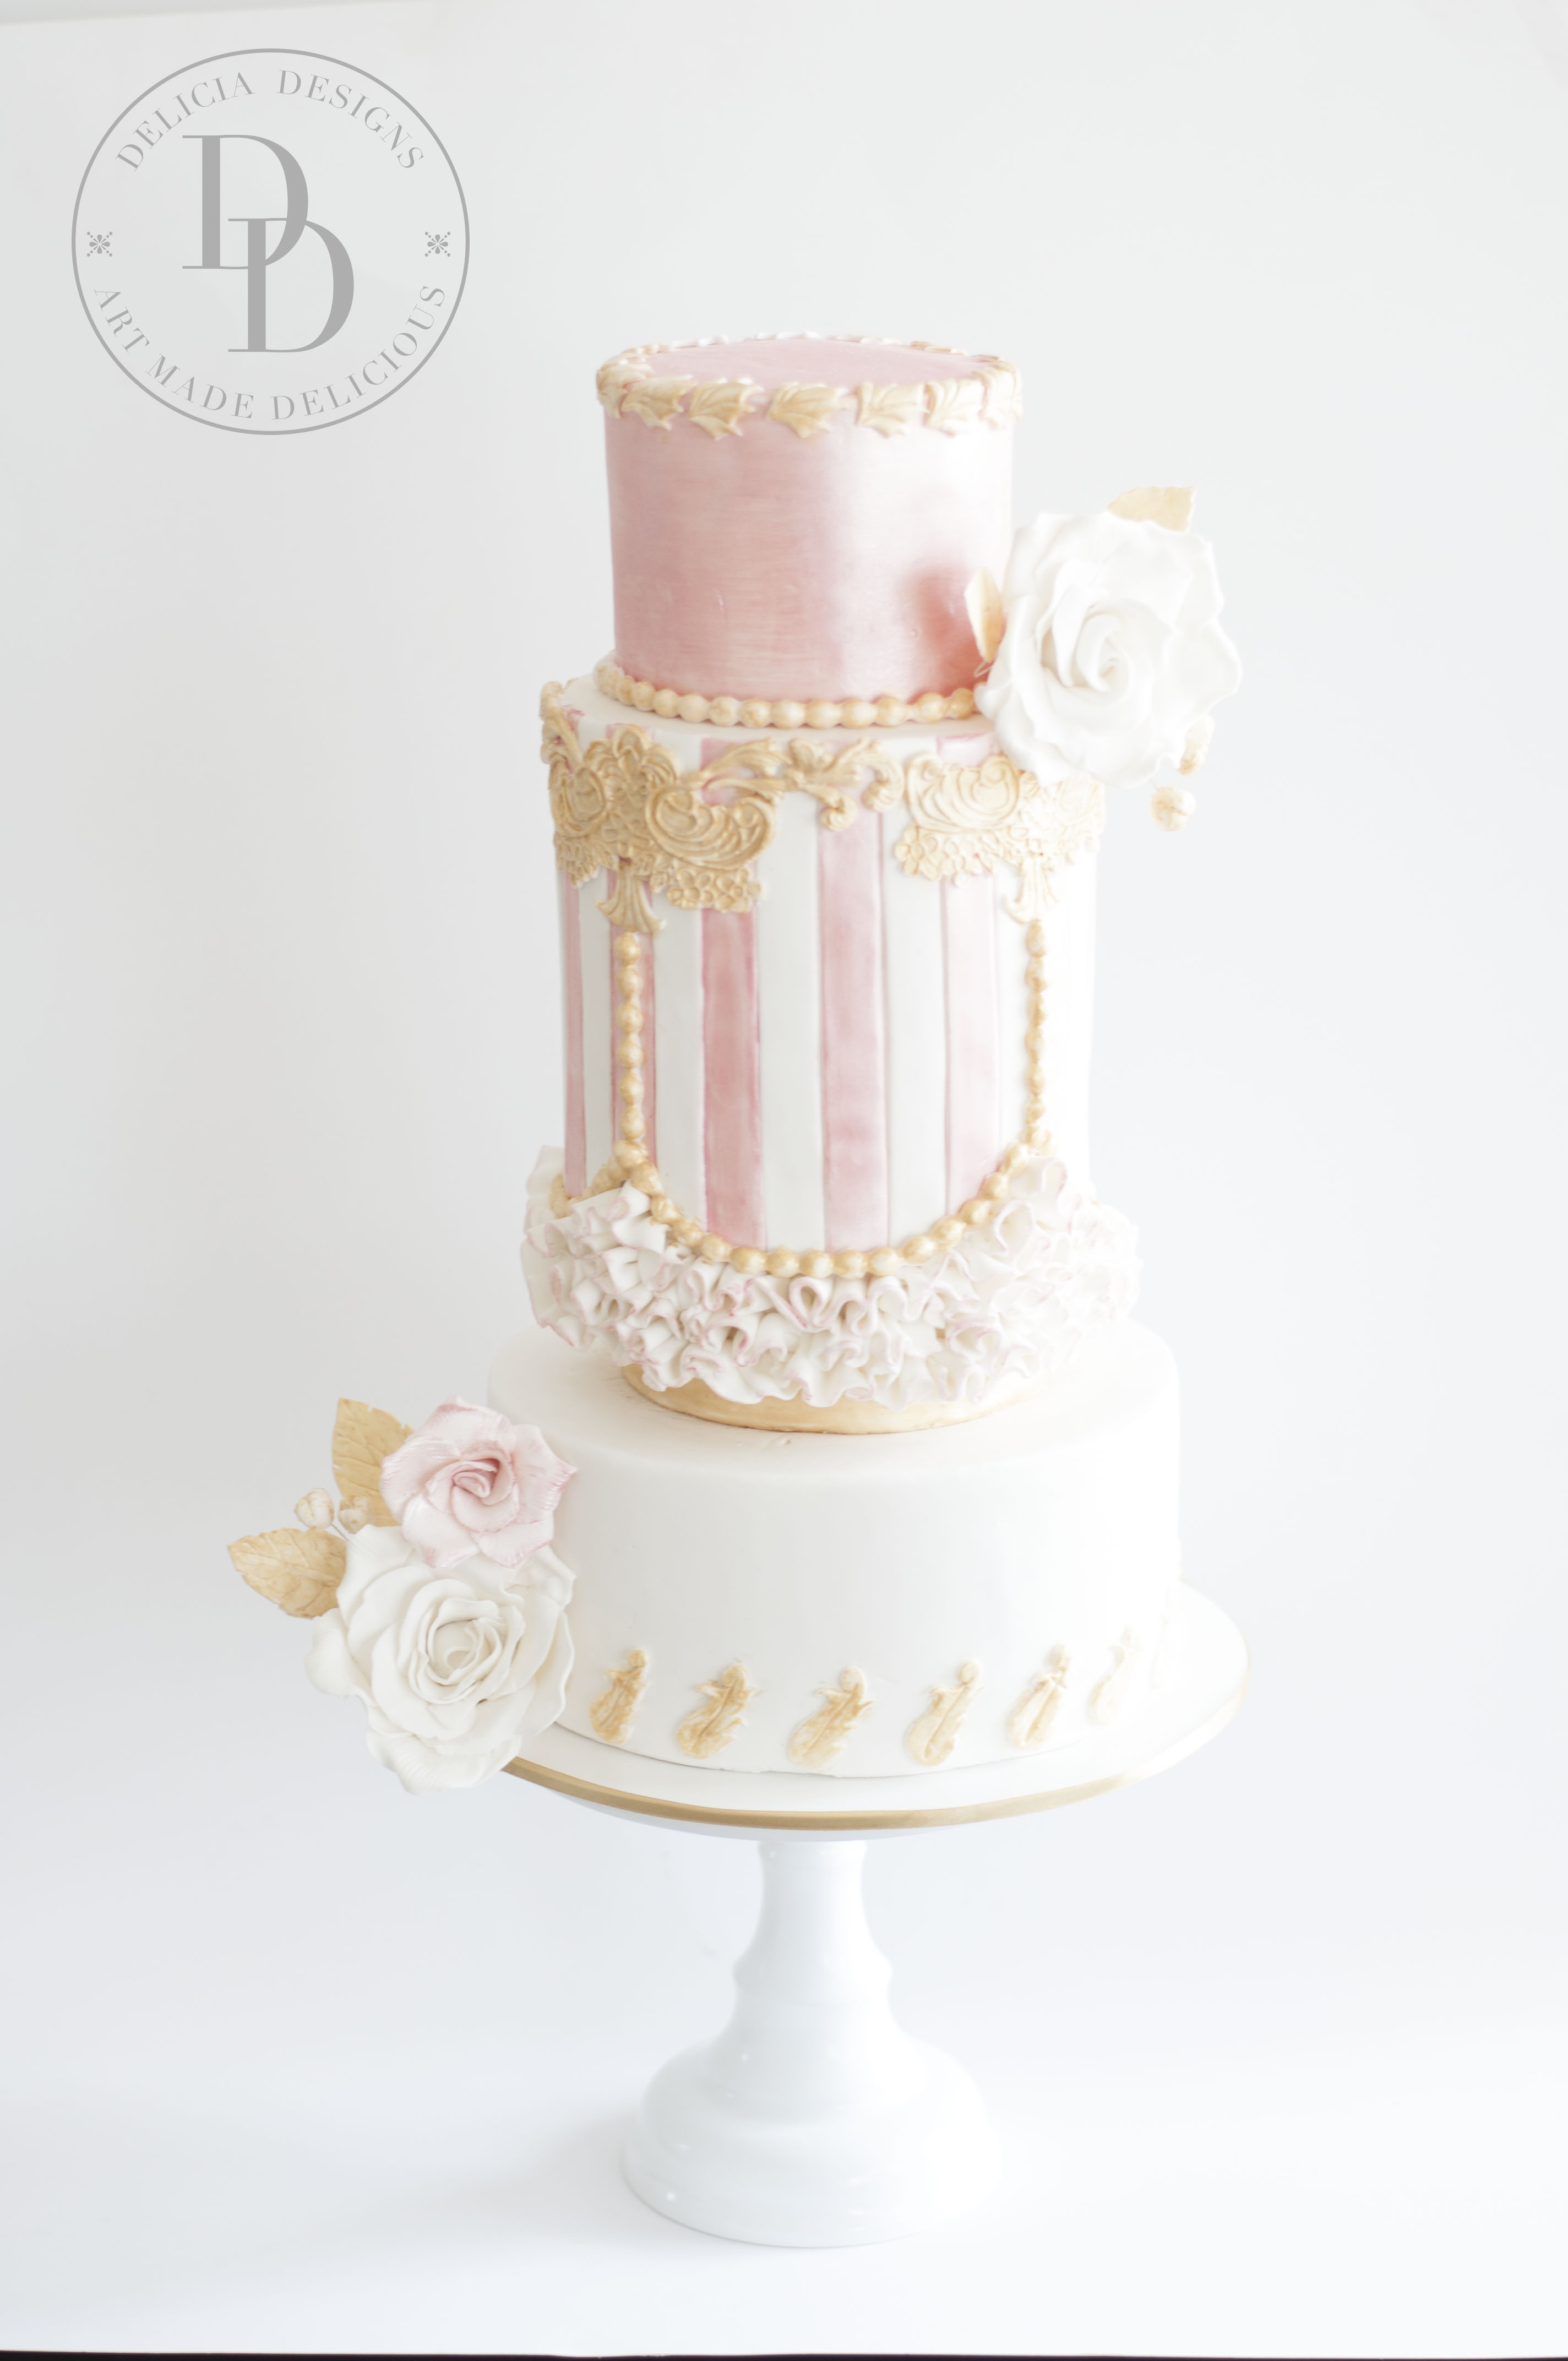 Rose gold and pink striped cake